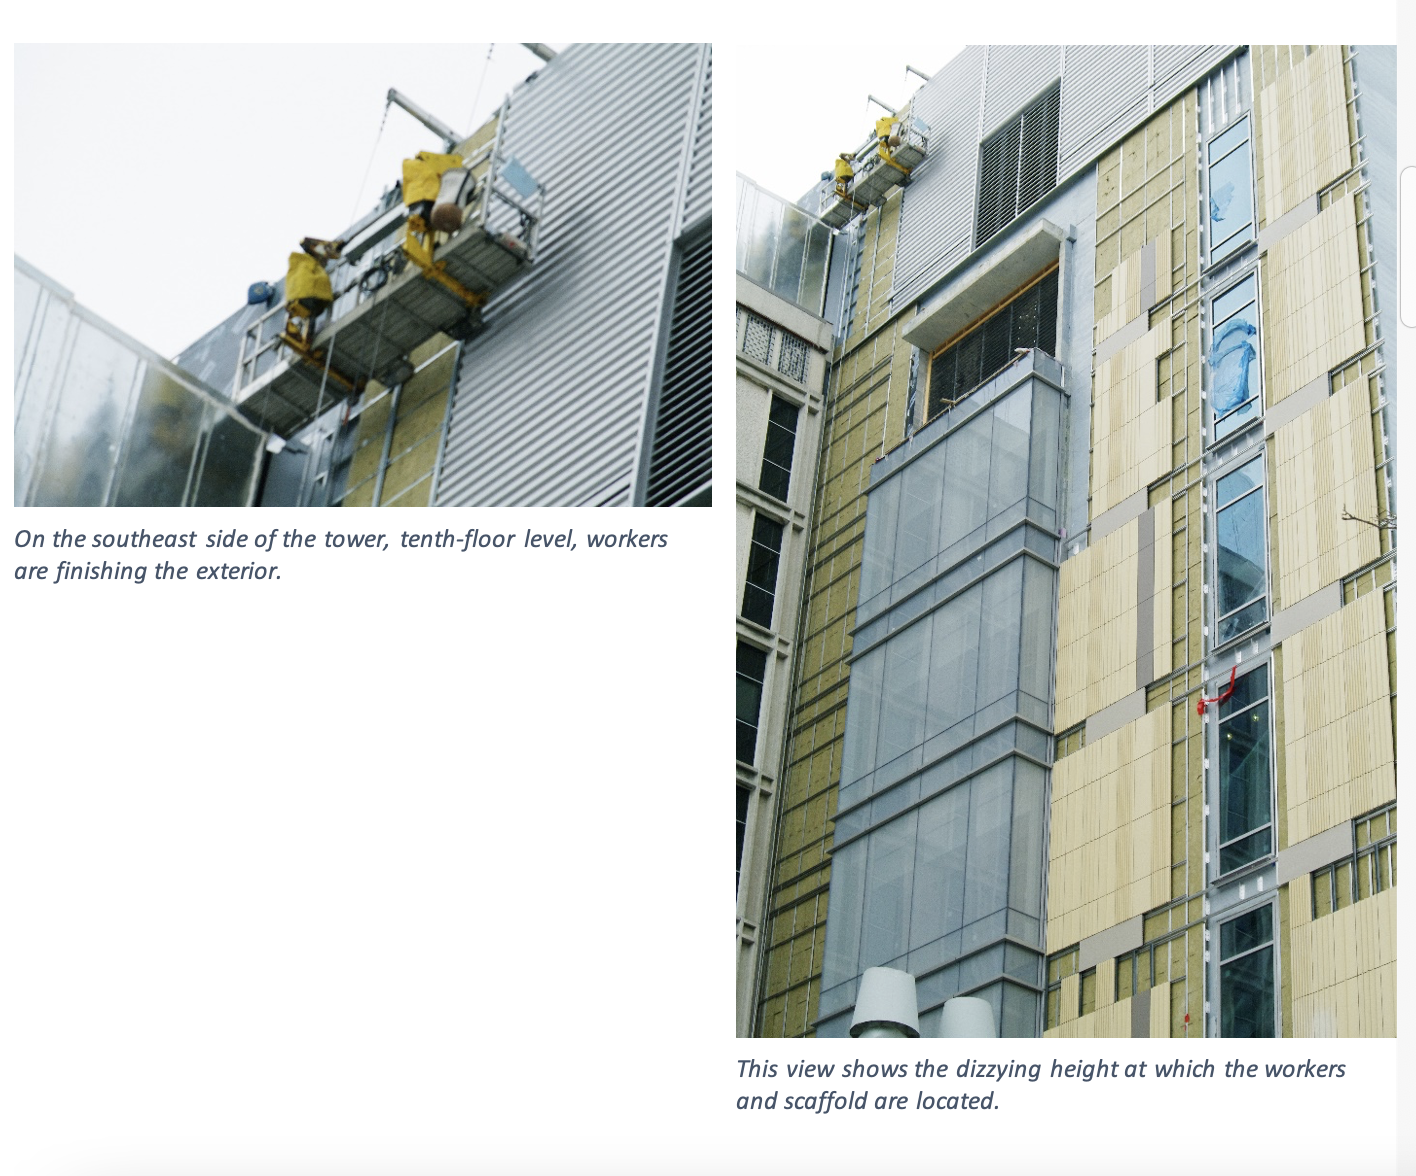 Two photos show the southeast side of the tower, where workers install the panels at the 10th floor level.